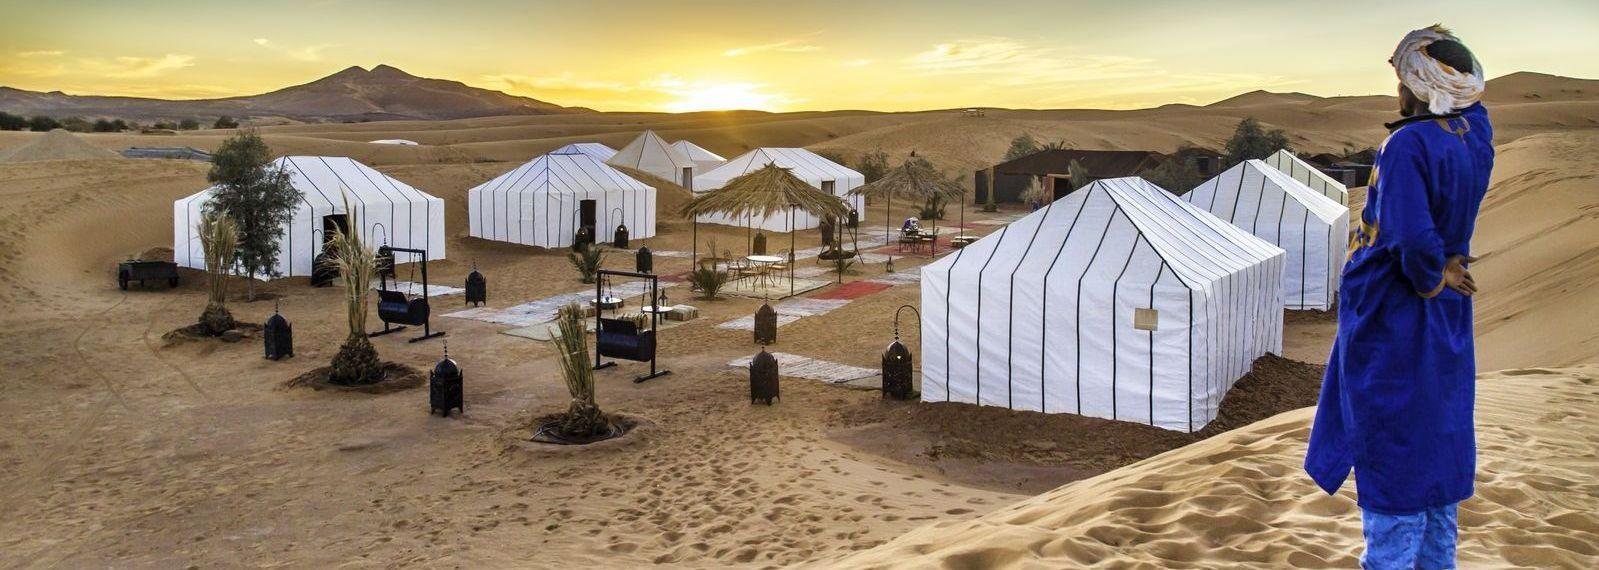 Overnight stay in Luxury desert camp